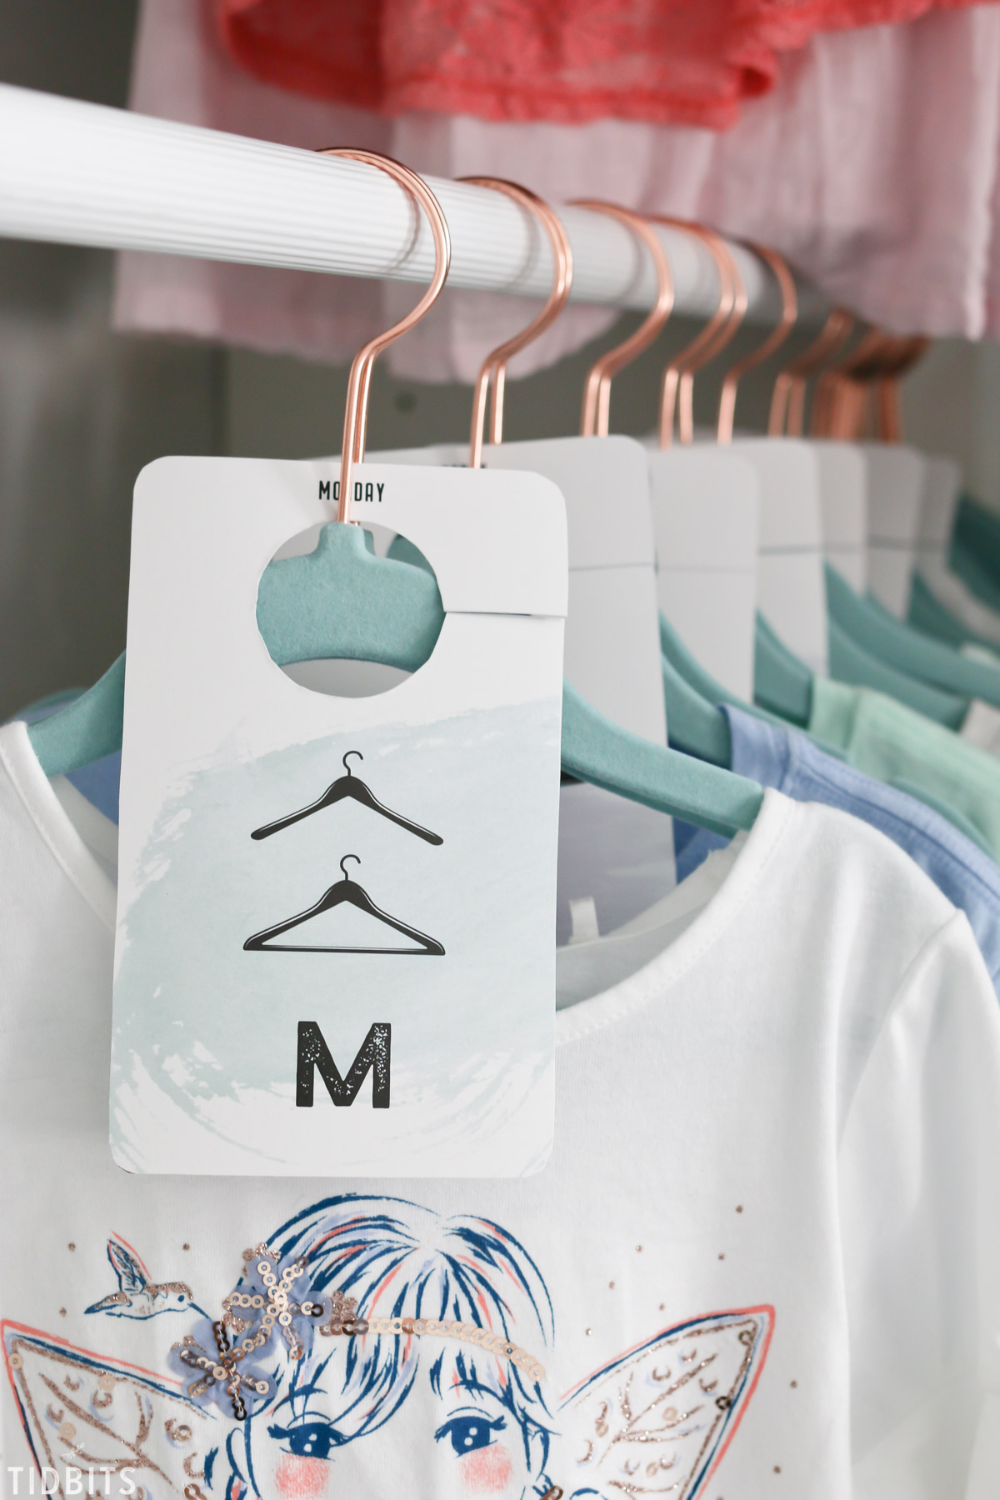 Get your free printable days of the week closet dividers for better closet organization. Kids, adults, boys, girls - you name it! #camitidbits #closetdividers #closetorganization #kidscloset #closet #organization #hangers